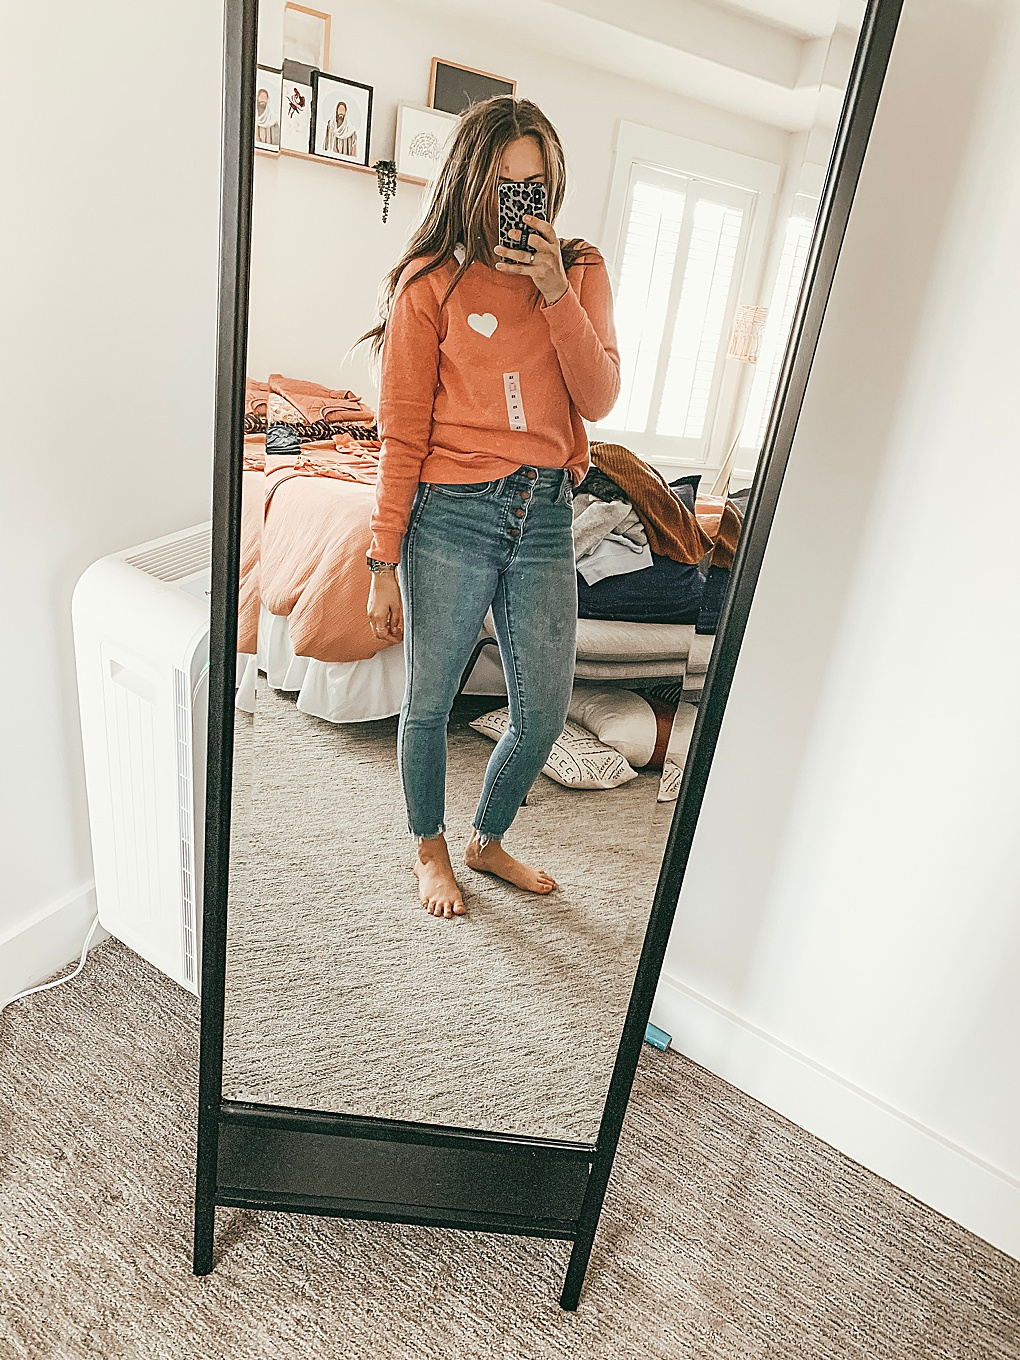 Heading to Old Navy soon? Utah Style blogger Dani Marie is sharing her top picks this month in her Old Navy Try-On for August. See them here!